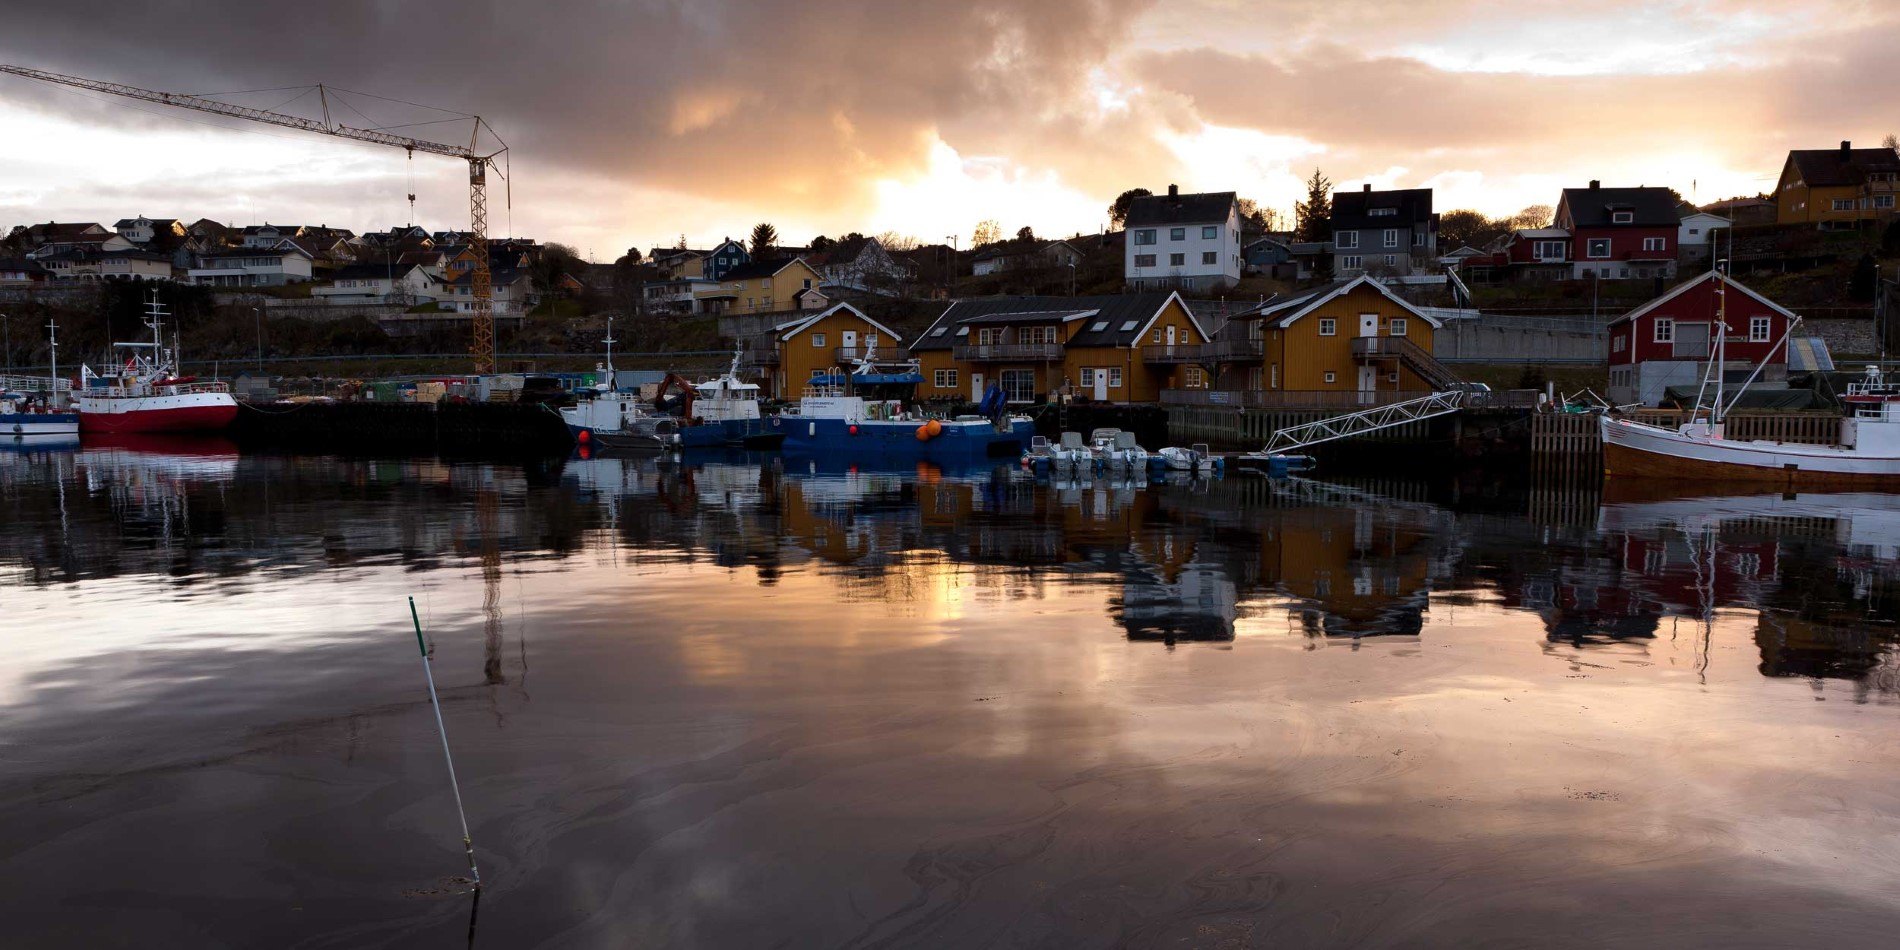 2500x1250_Roervik_Evening-summer_By_Lain_Guest-Image.jpg